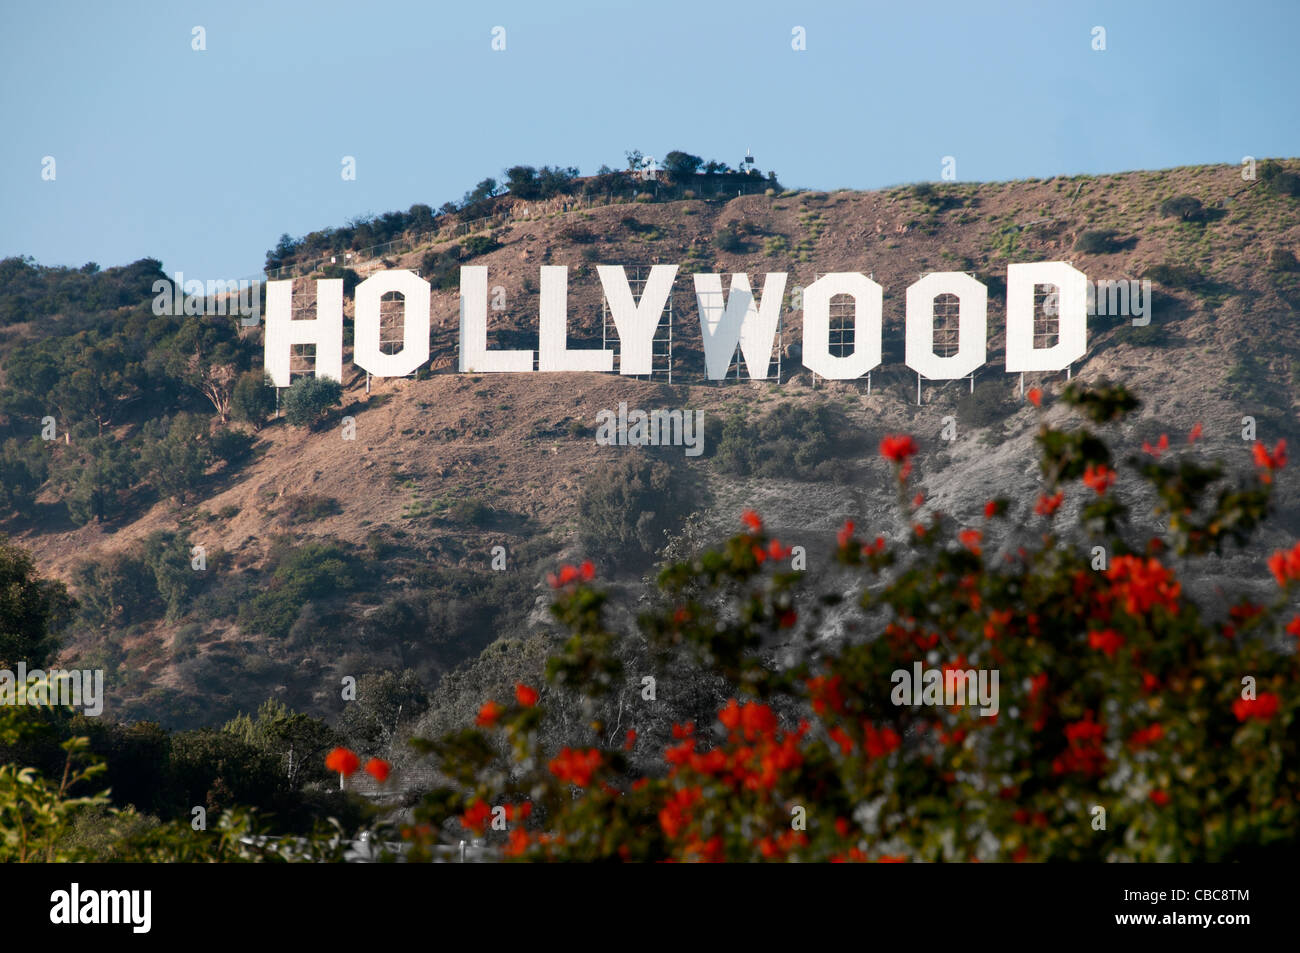 The Hollywood sign Hollywood Hills from Griffith Observatory Los Angeles California United States - Stock Image